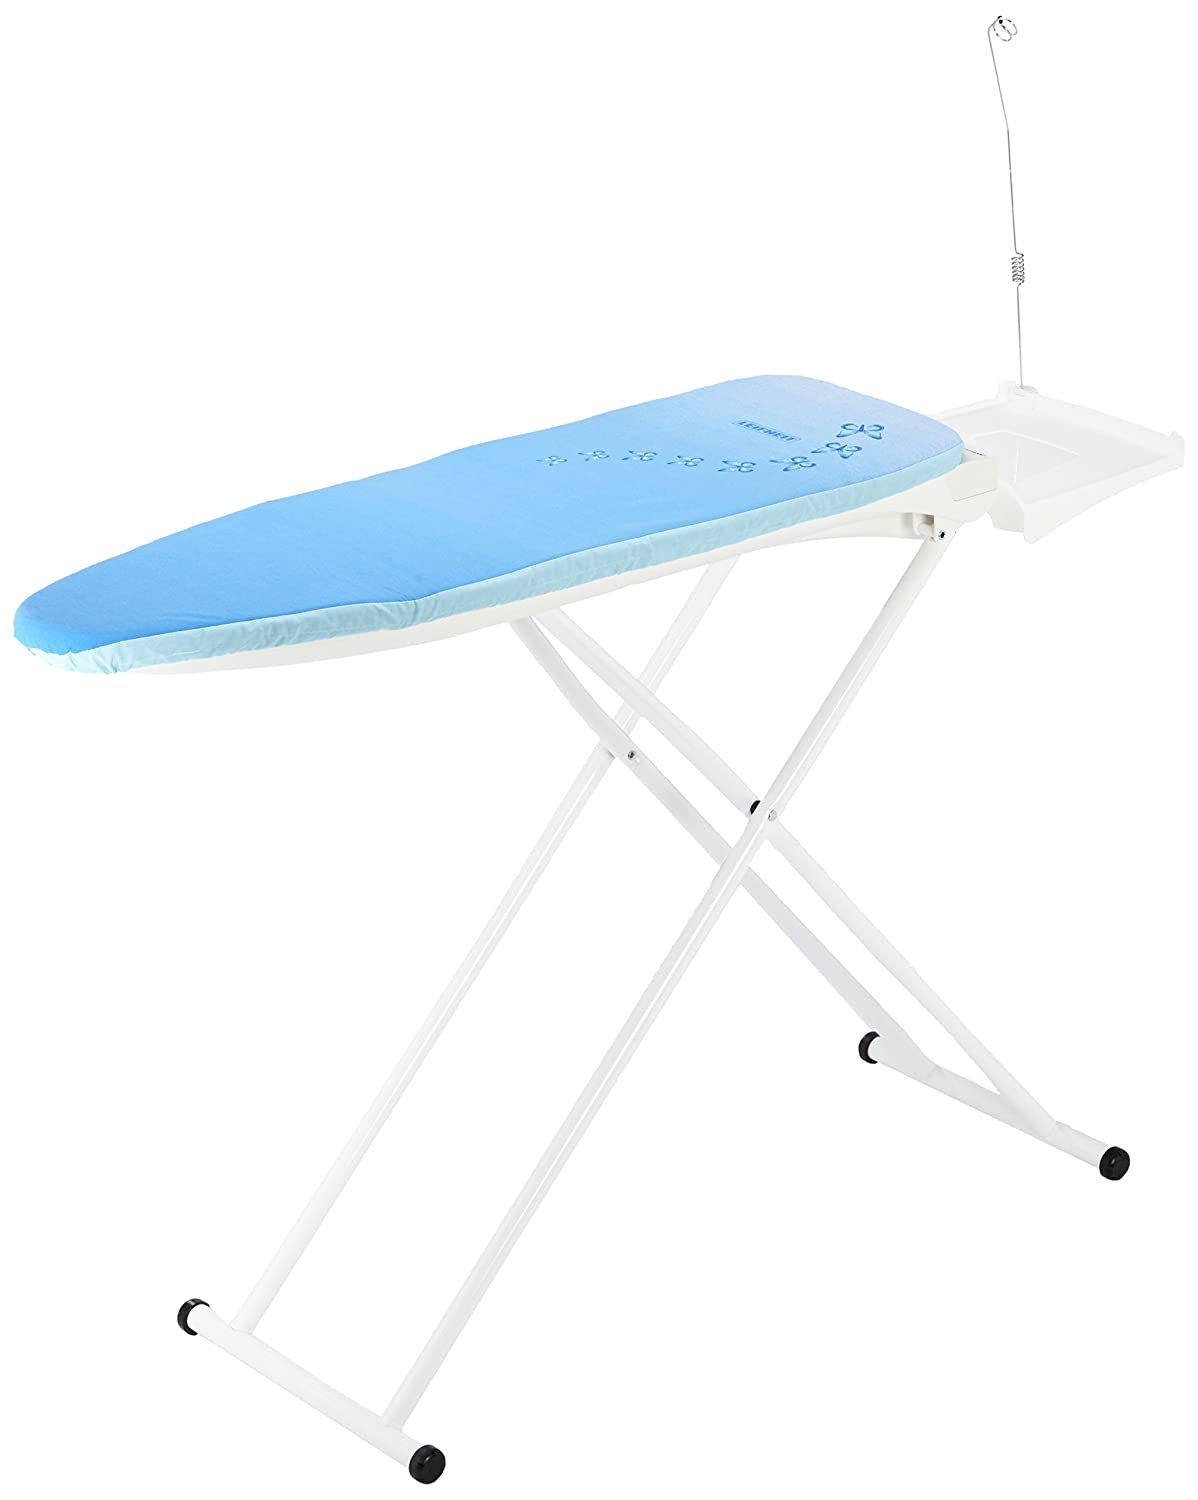 Leifheit Ironing Table AirActive M, Ironing Board, Active Functions, Large Iron Rest with Electricity Socket, Steady Base with Adjustable Legs, Cable Holder, 76080 7 M, VE 1